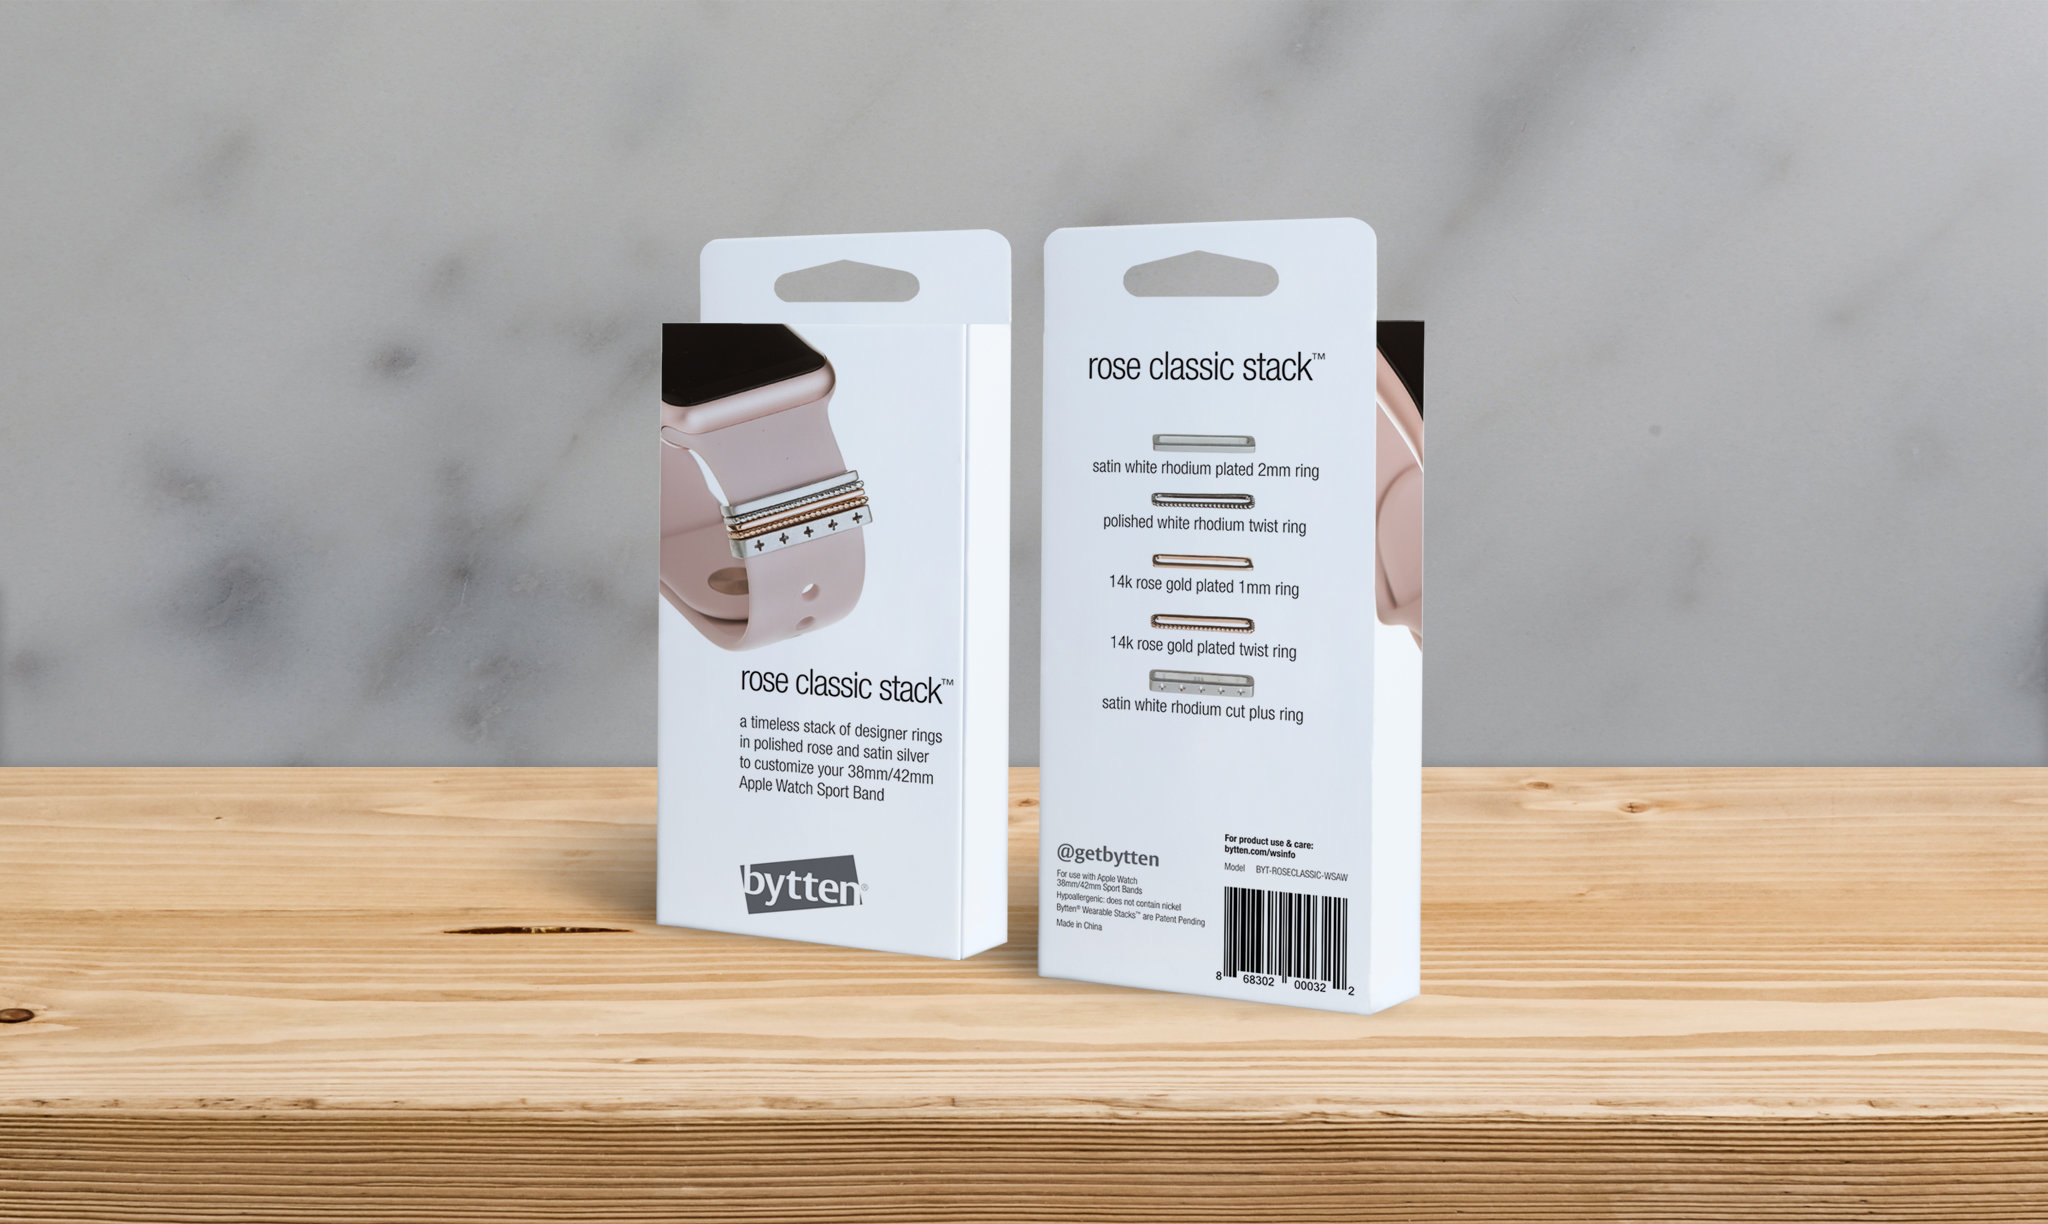 Bytten Apple Watch Band Packaging